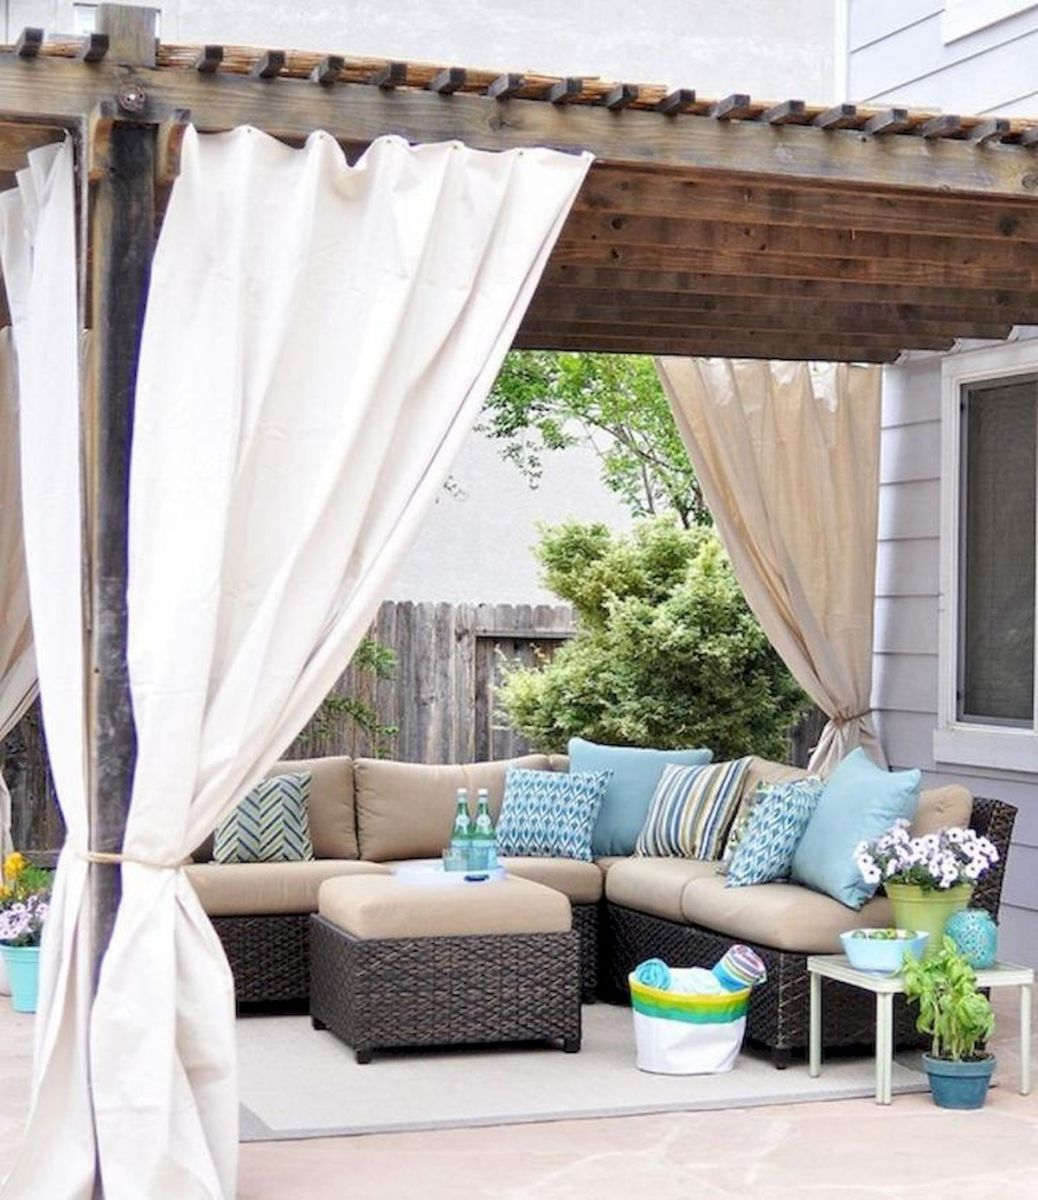 60 Awesome Backyard Privacy Design and Decor Ideas (8)